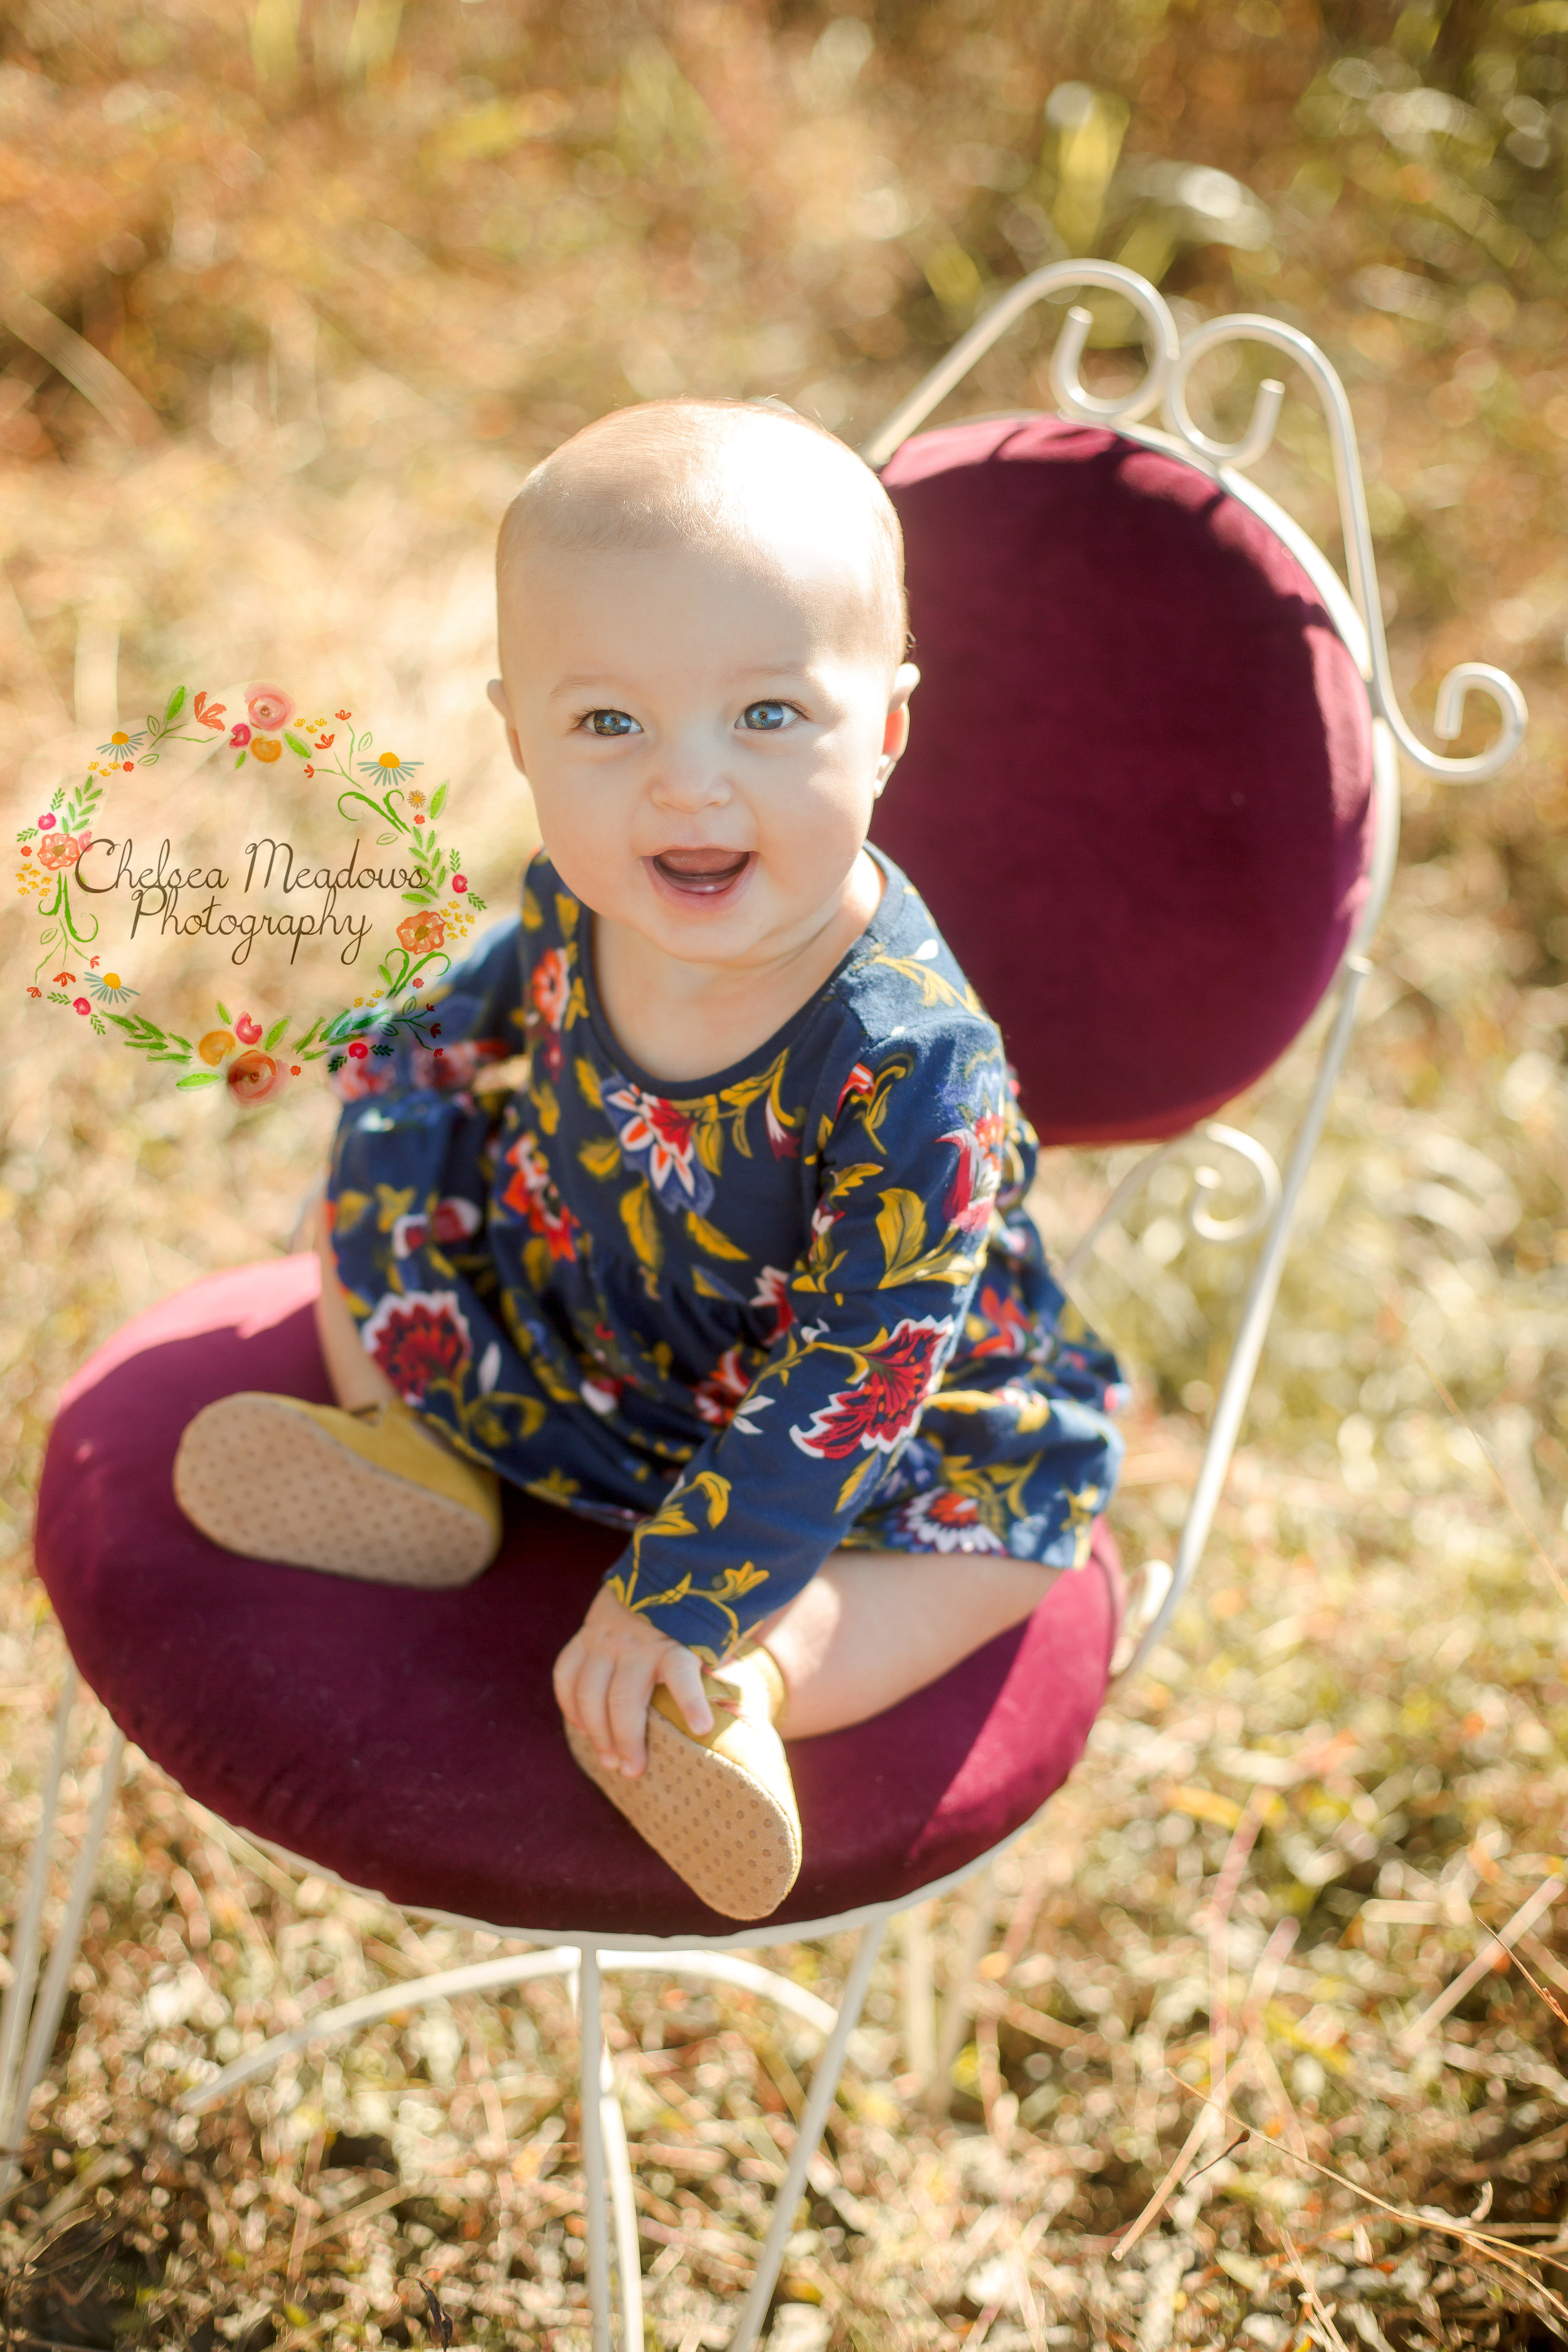 Ivy 6 Month Session - SM - Nashville Family Photographer - Chelsea Meadows Photography (4).jpg